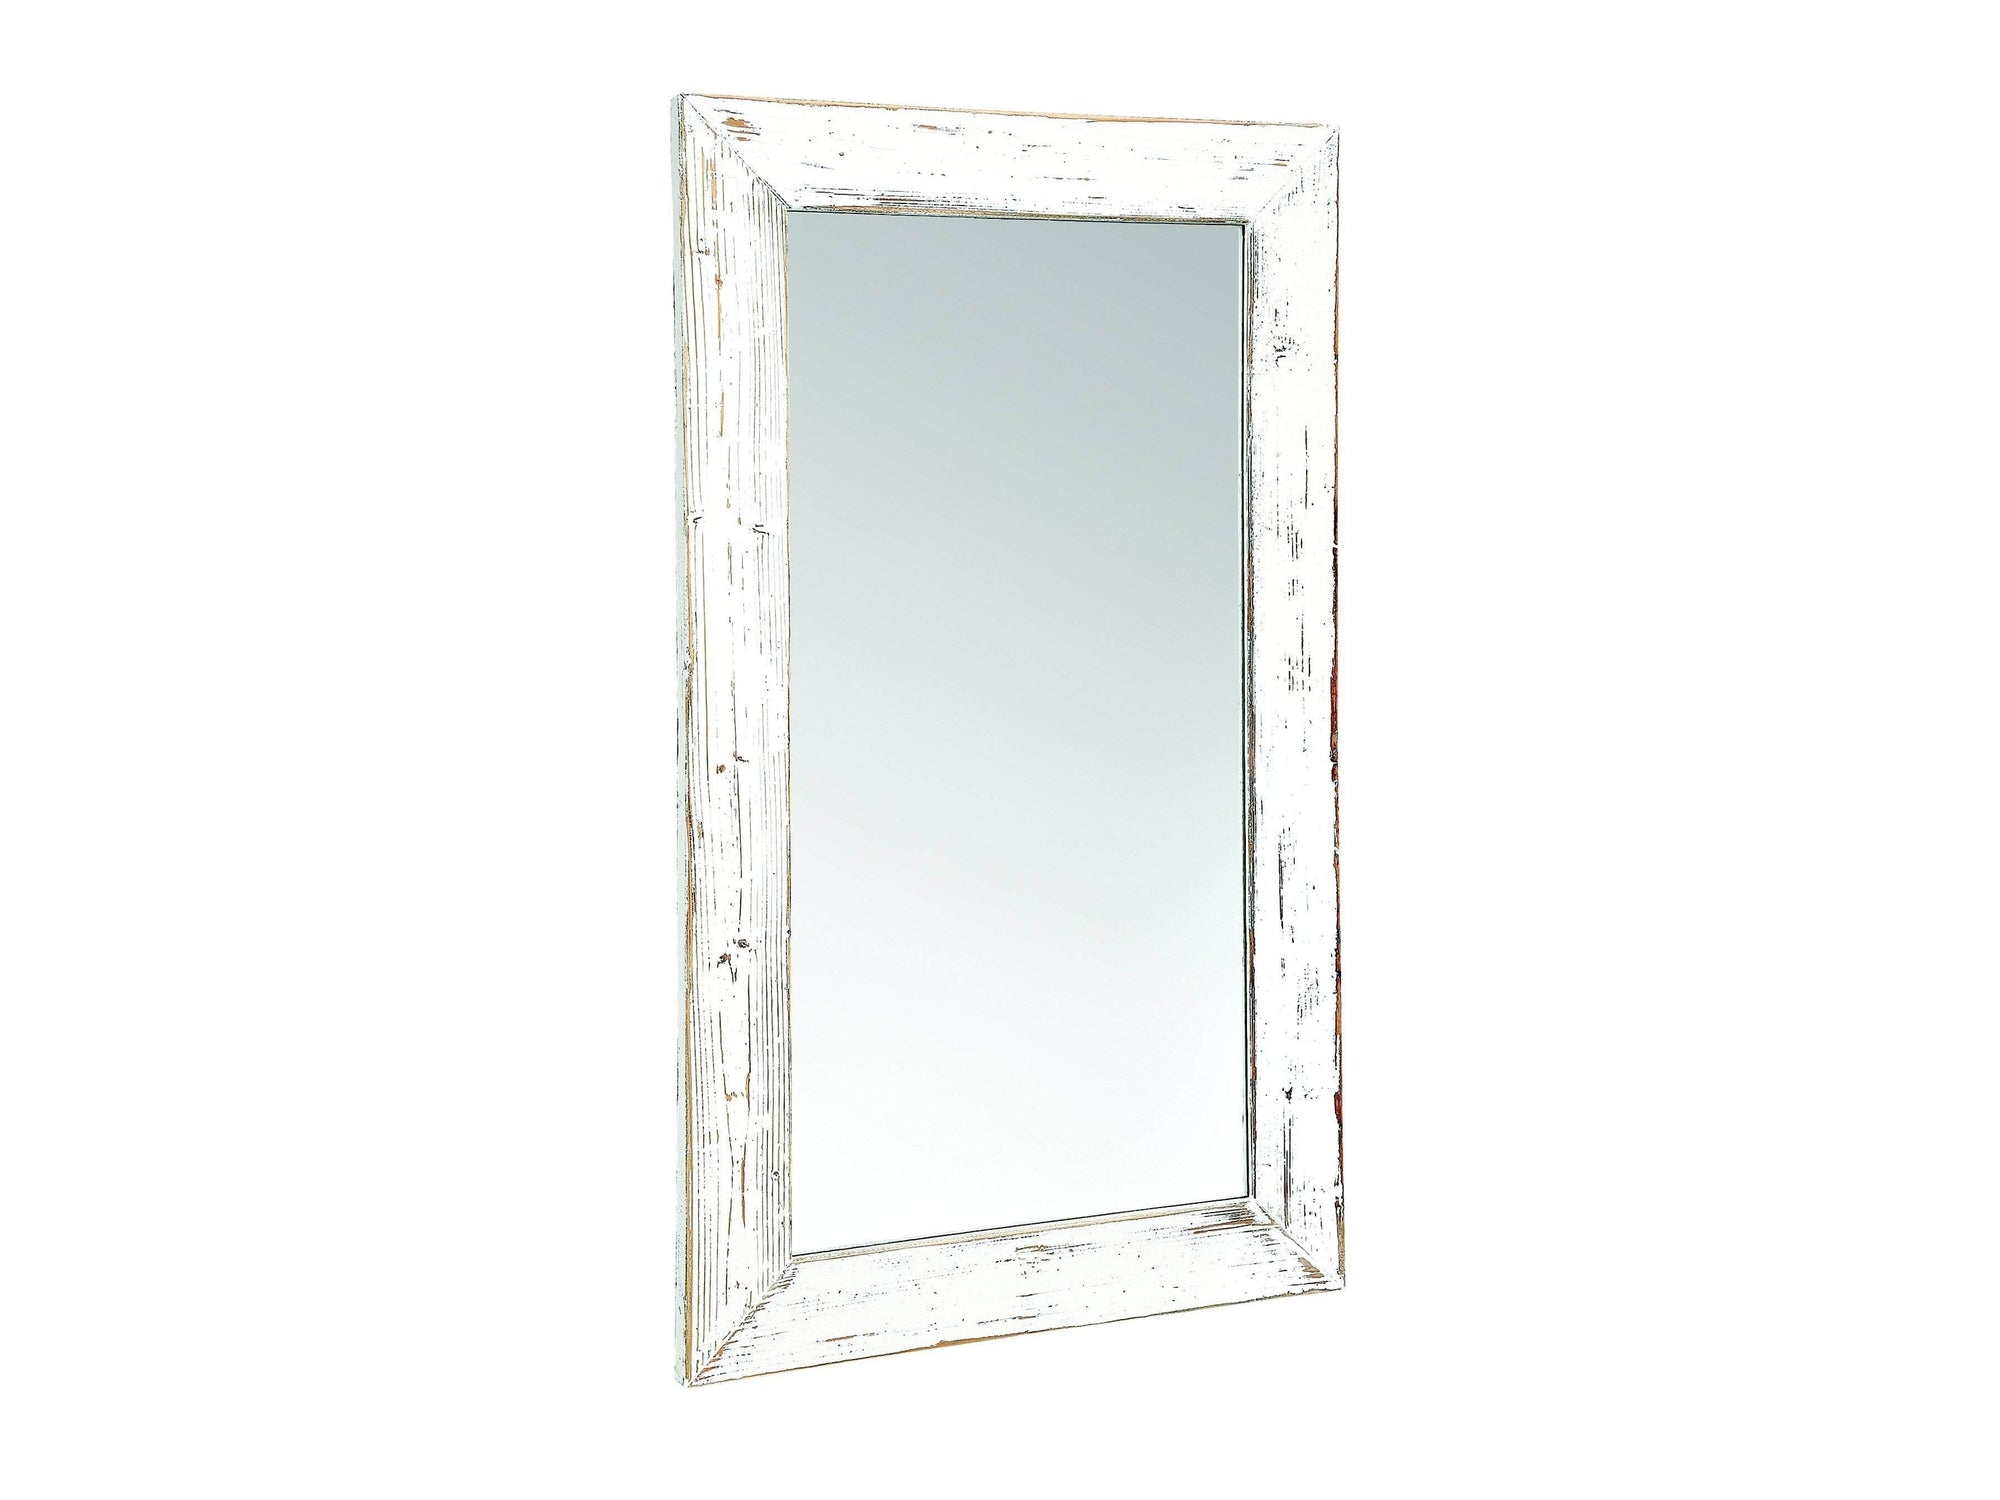 Hallway, living room or bedroom mirror, with a distressed wooden frame, painted ivory white